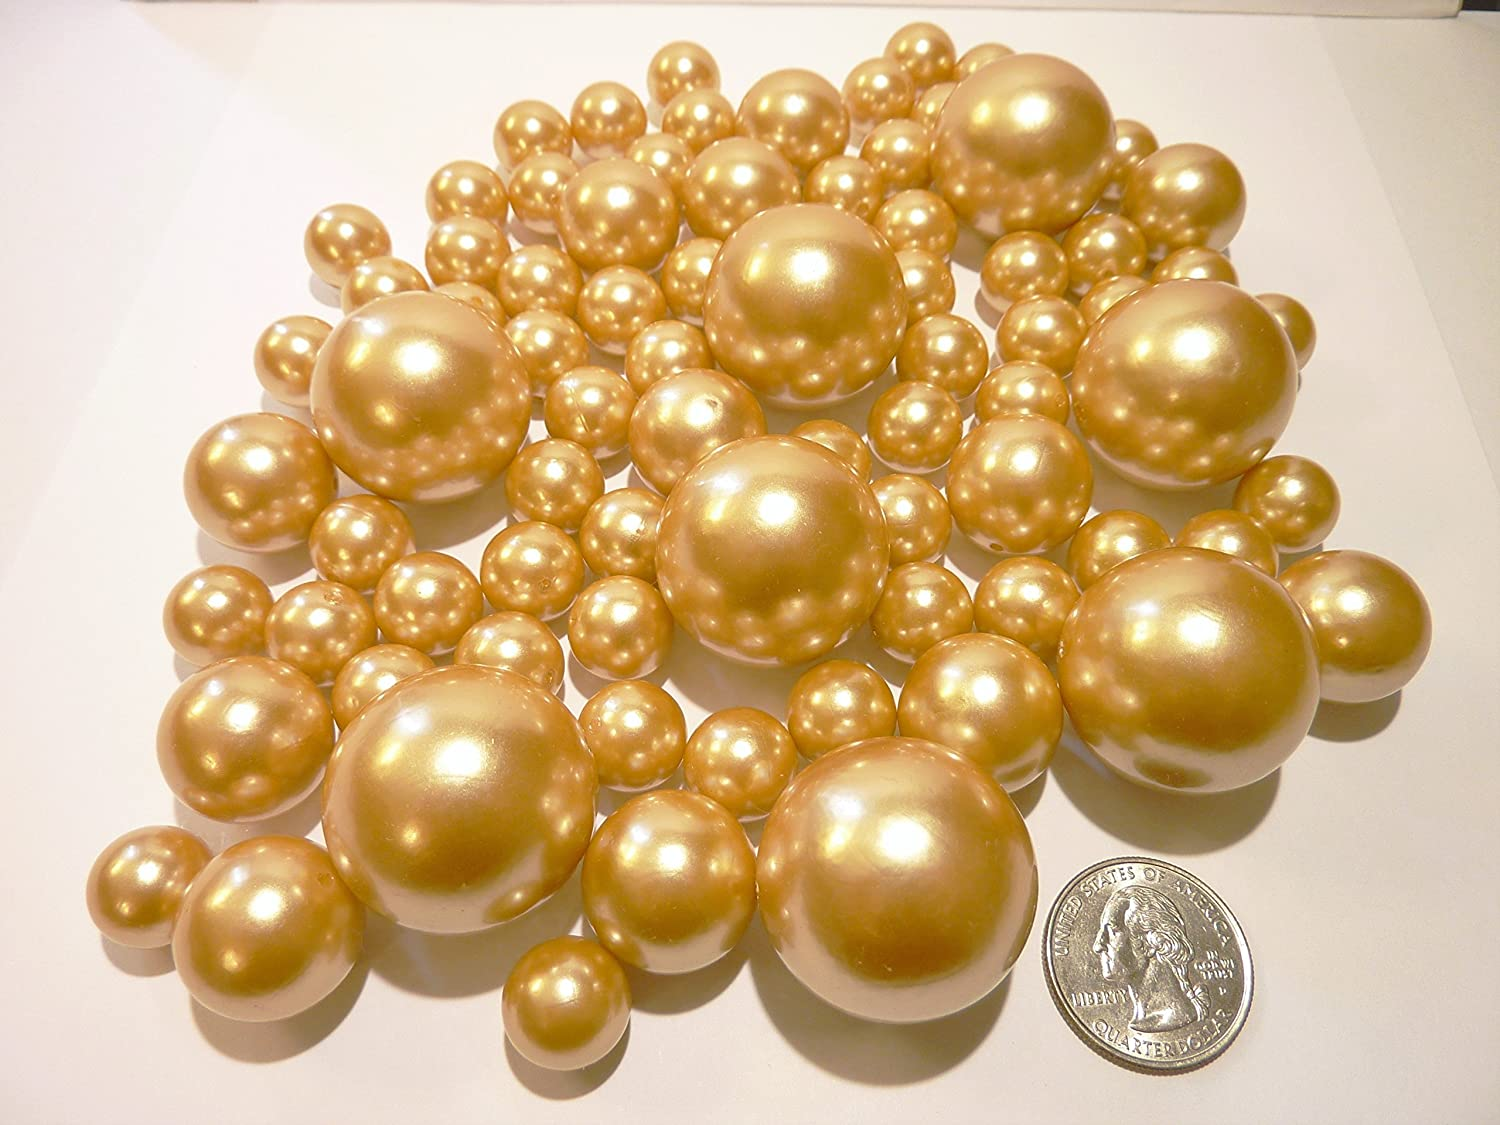 2 packs discount jumbo u0026 assorted sizes all gold pearls vase fillers value pack for to float the pearls order the transparent water gels